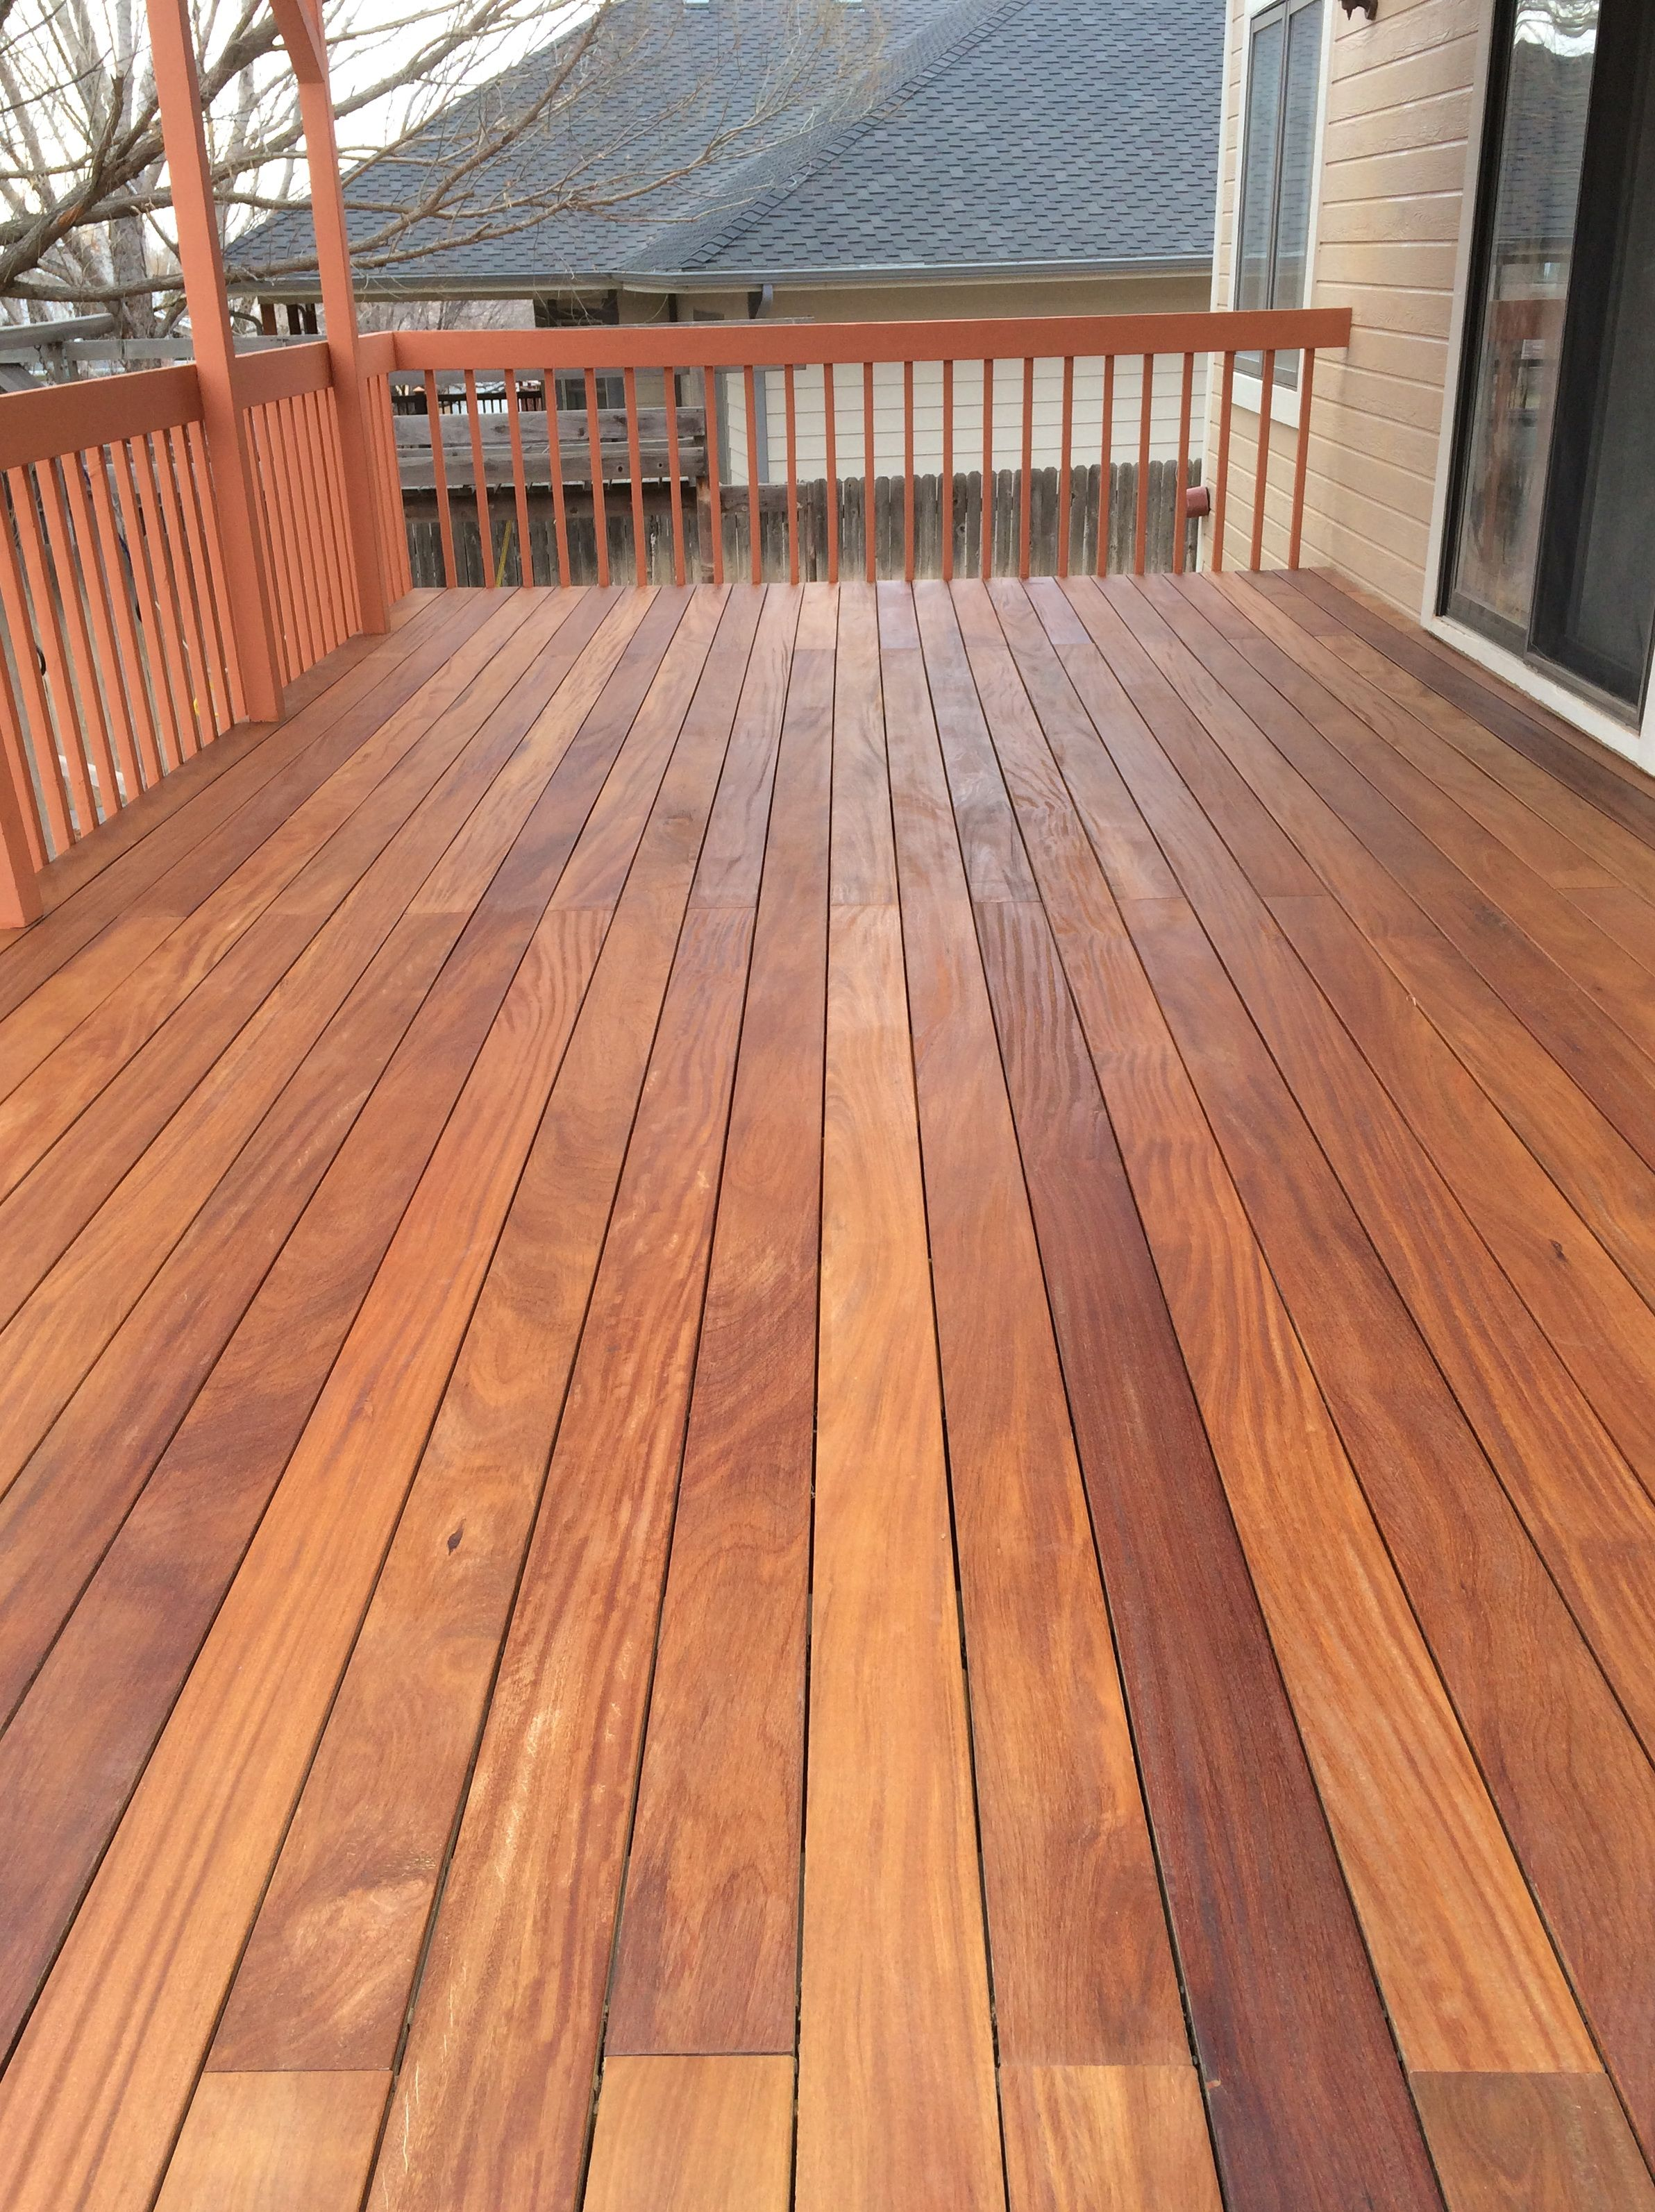 Sikkens Deck Stain Colors Deck Stain Colors Cool Deck Deck